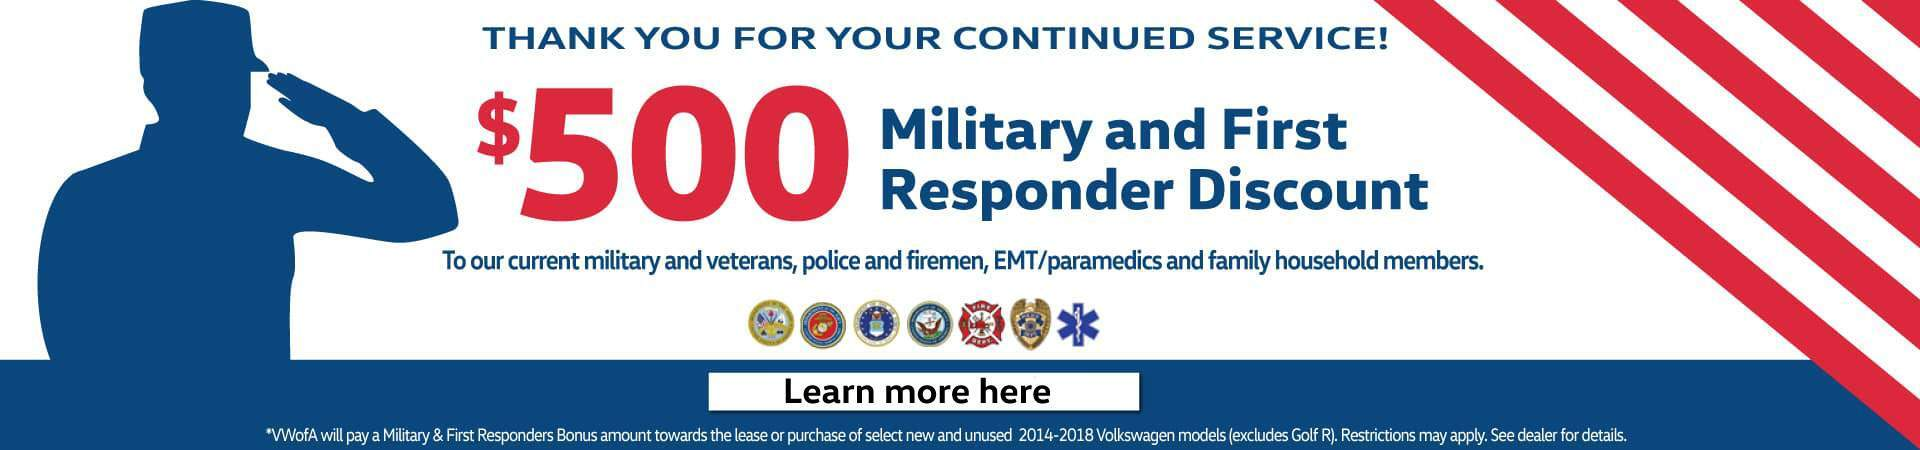 VW's Military & First Responder Bonus! Thank you for your service!